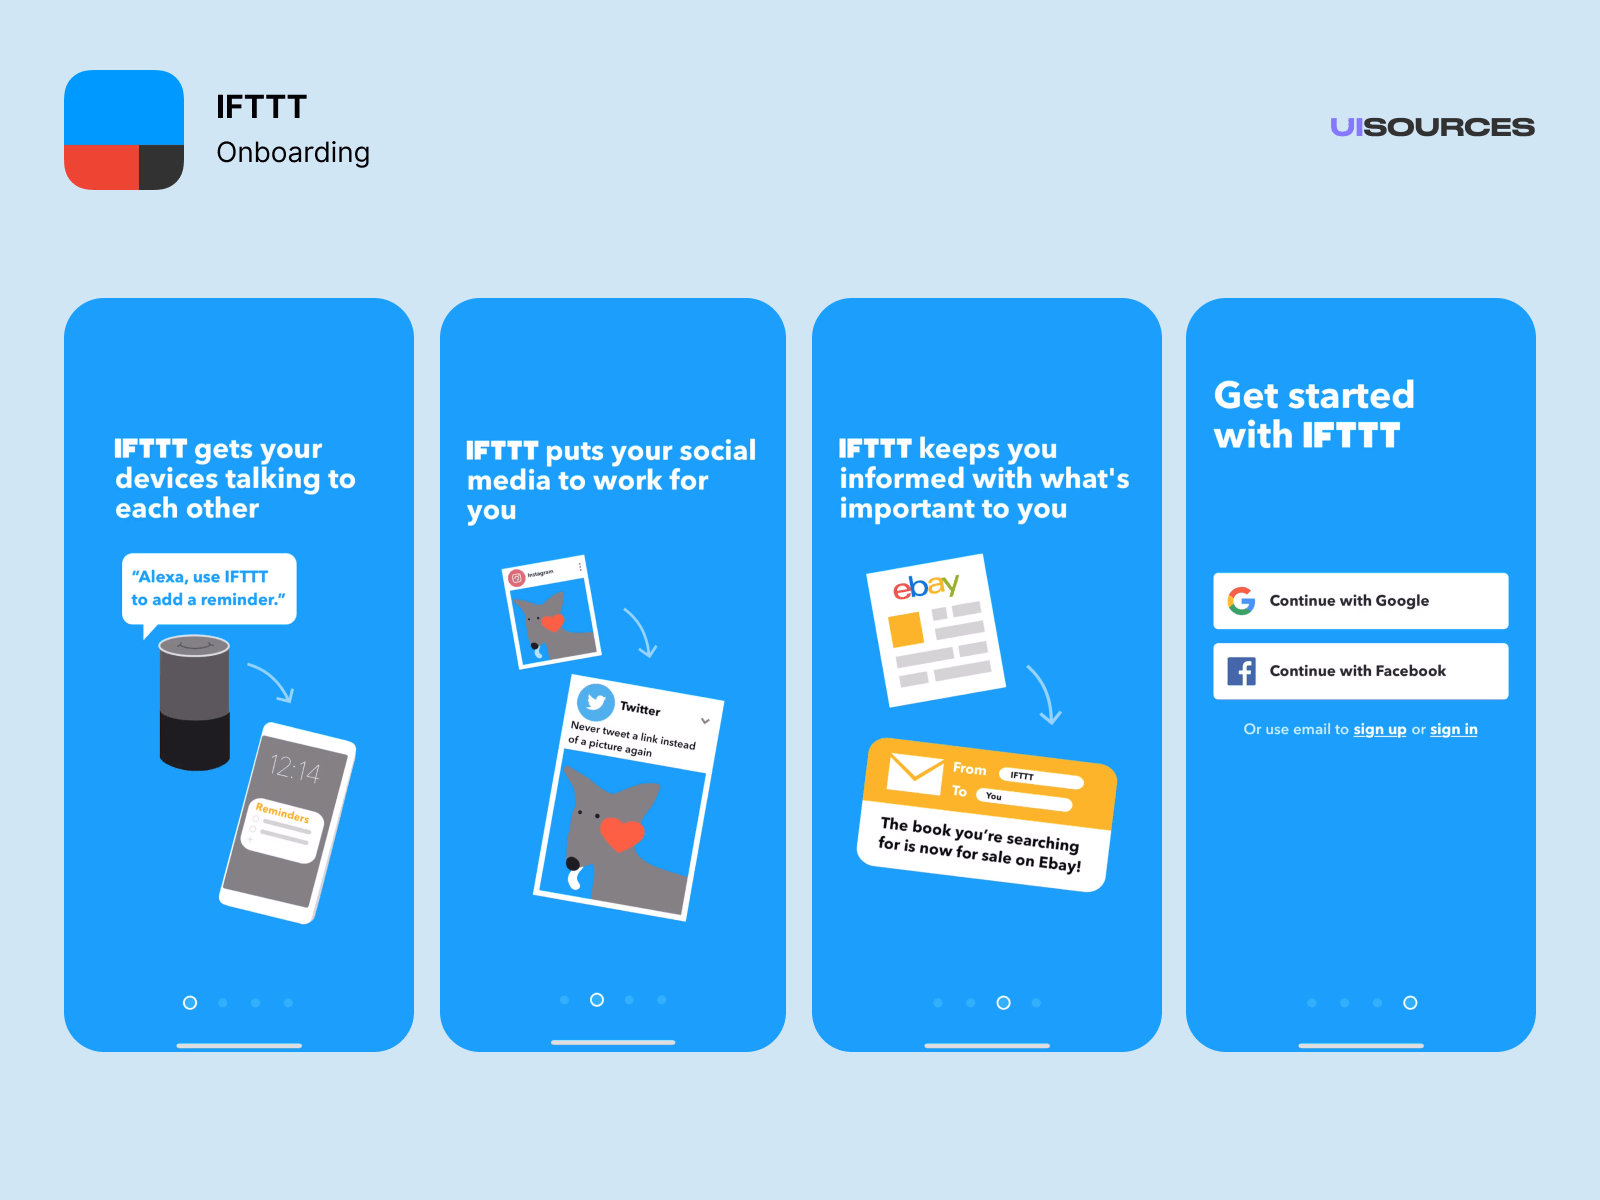 Onboarding and login